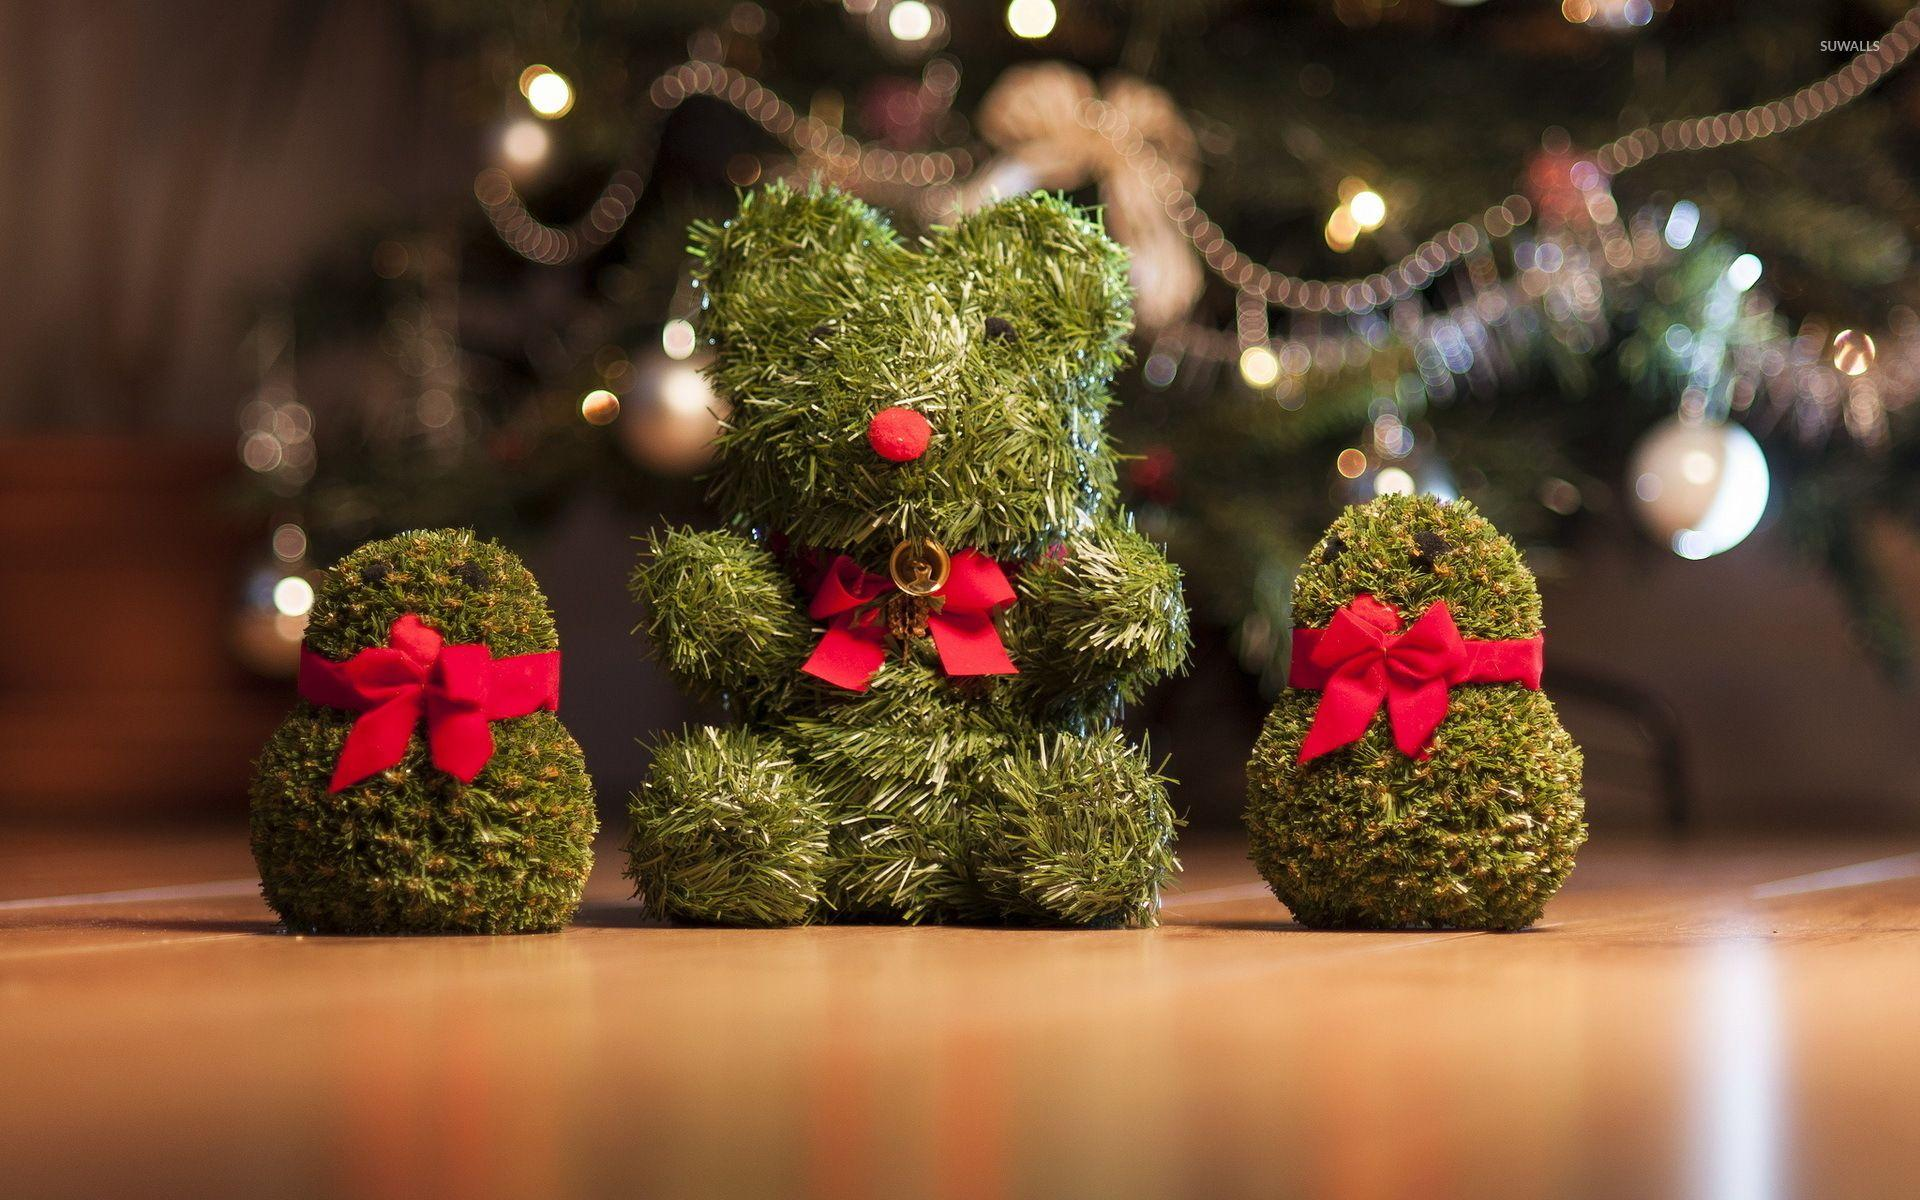 Cute Christmas decorations wallpapers